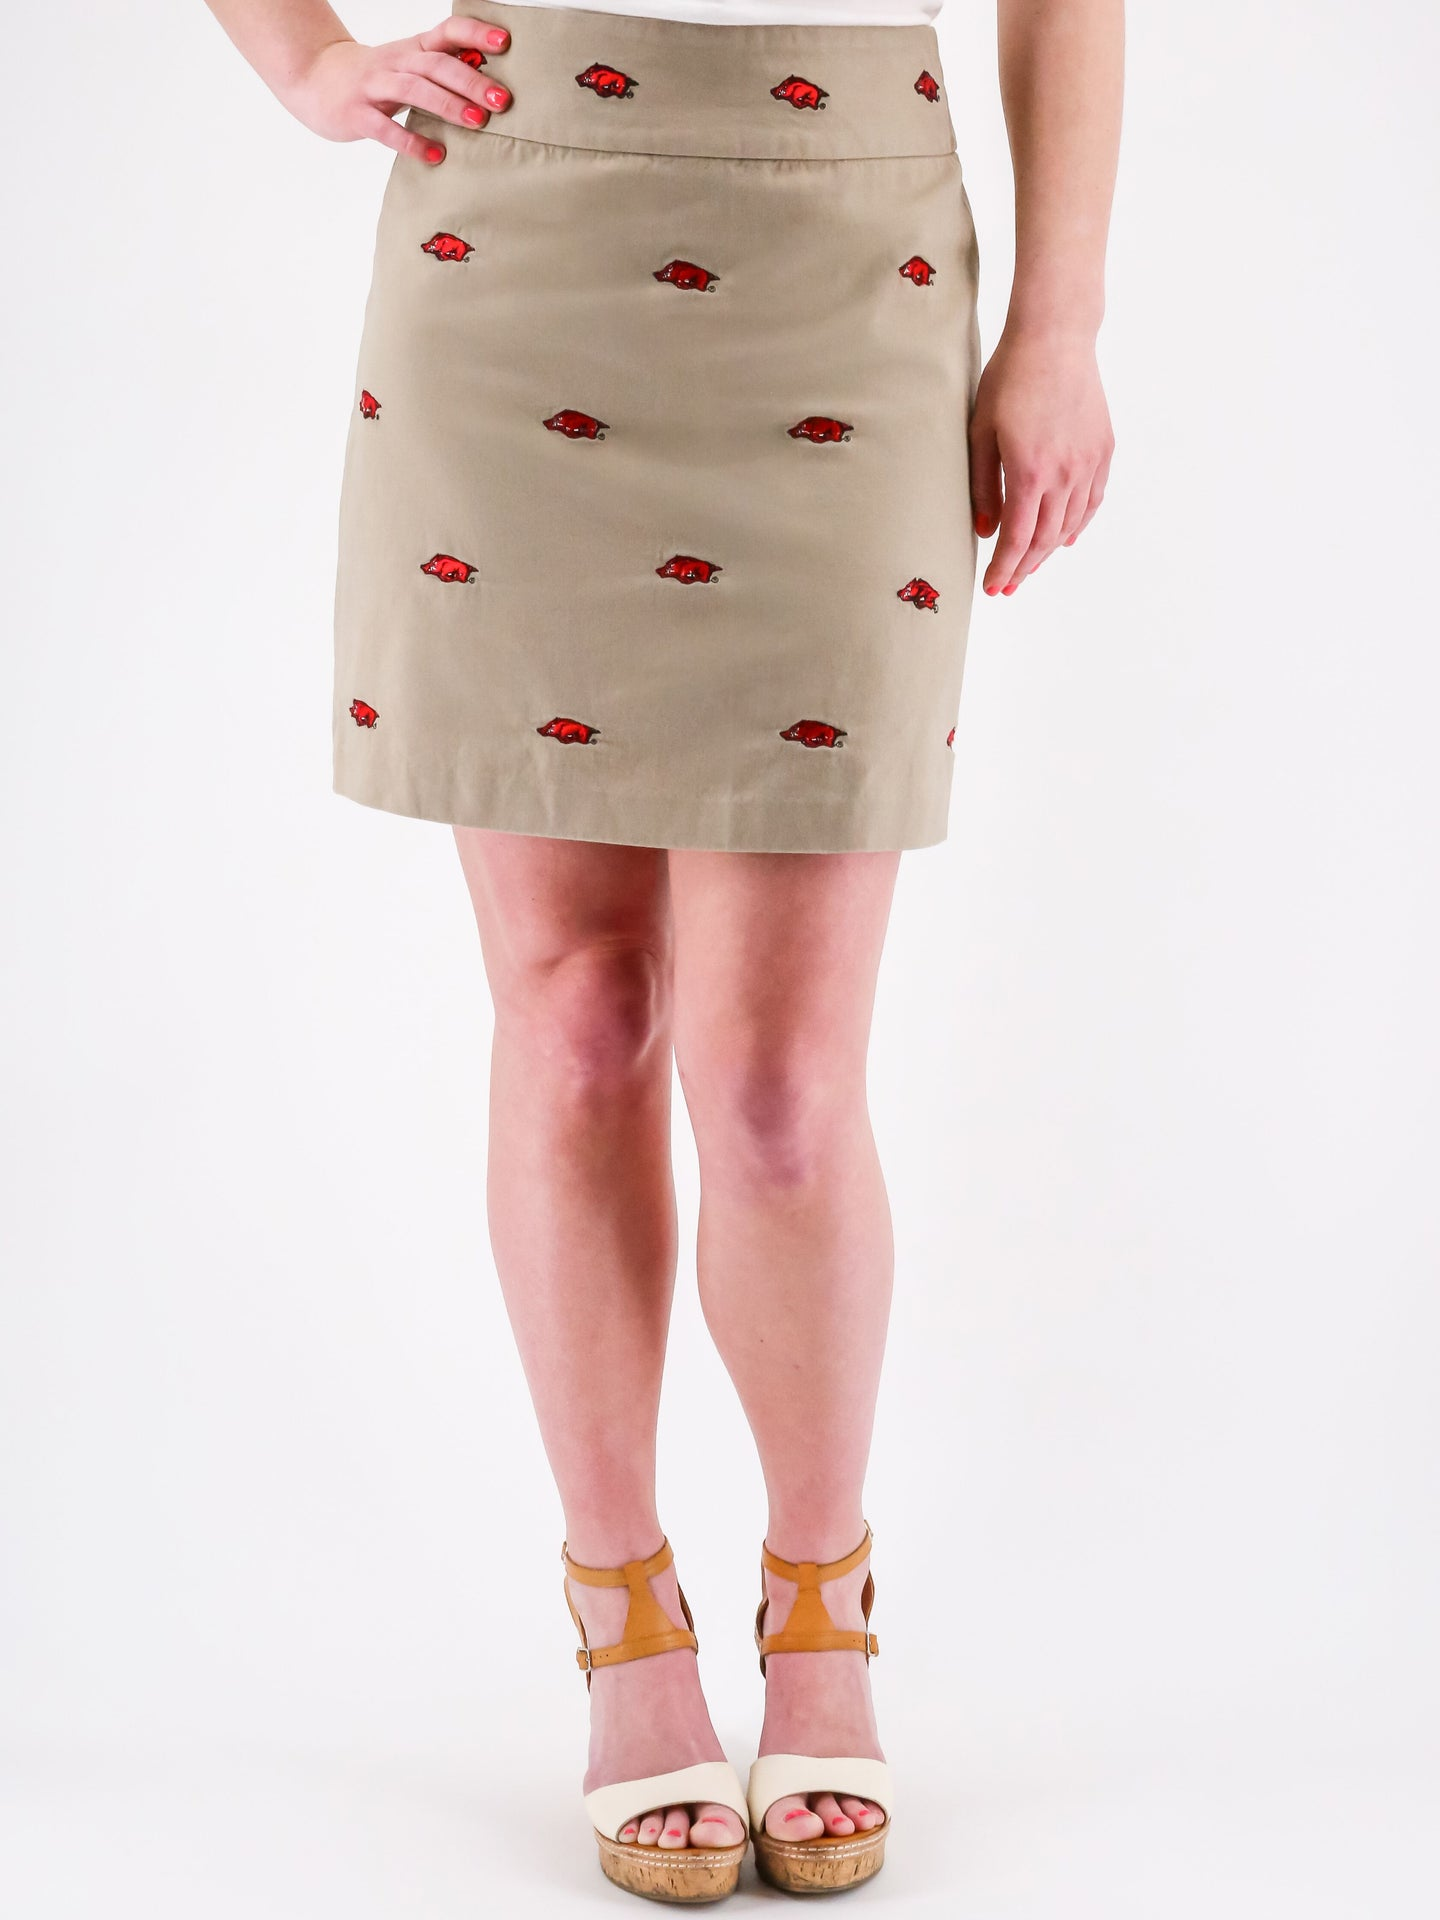 Arkansas Razorback Khaki Skirt